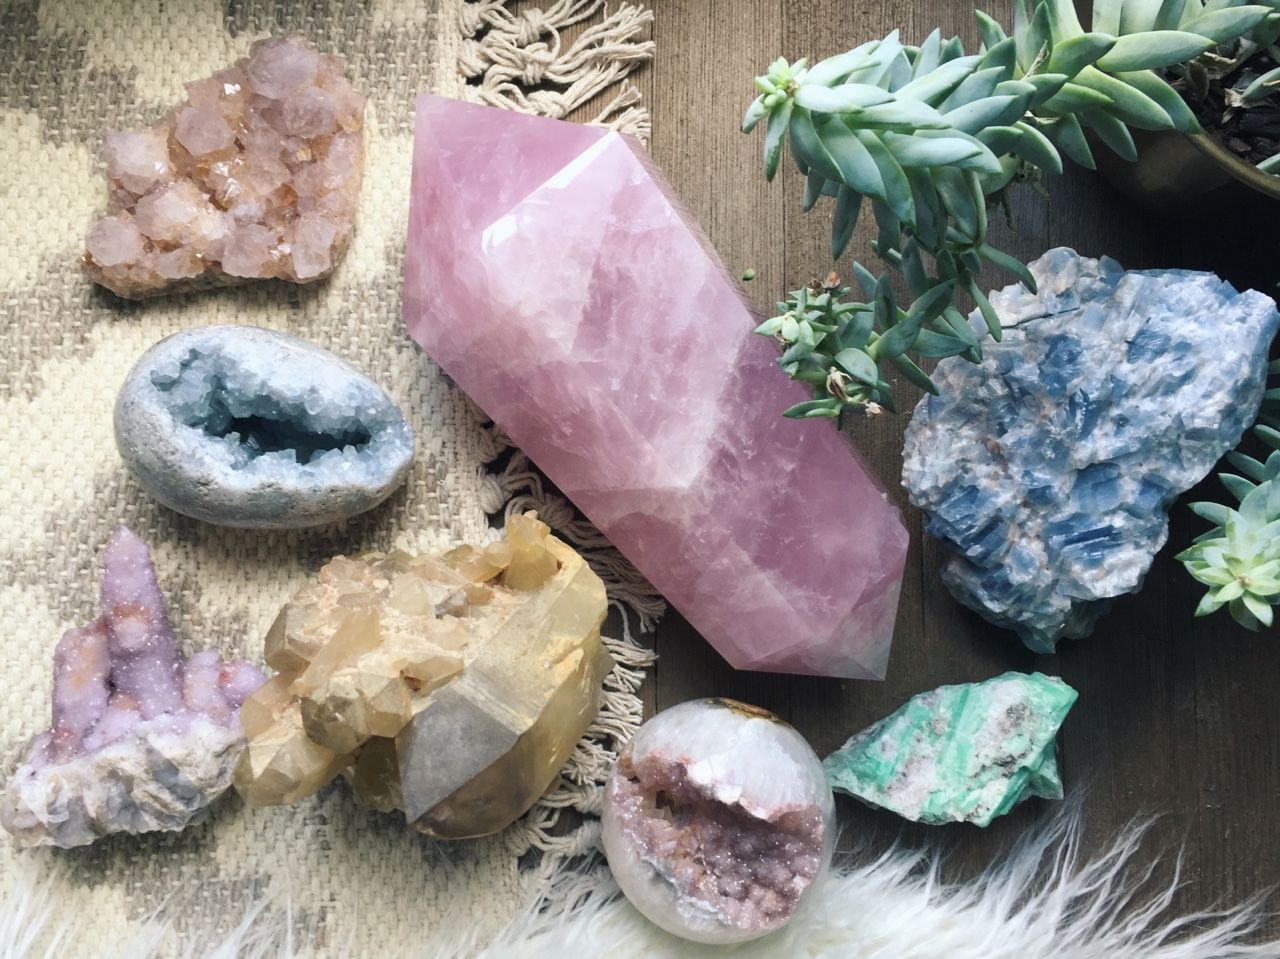 Learn more about love stone and how they can help you get hitched. Increase your odds to find the perfect soul mate. Never settle for less ever again!